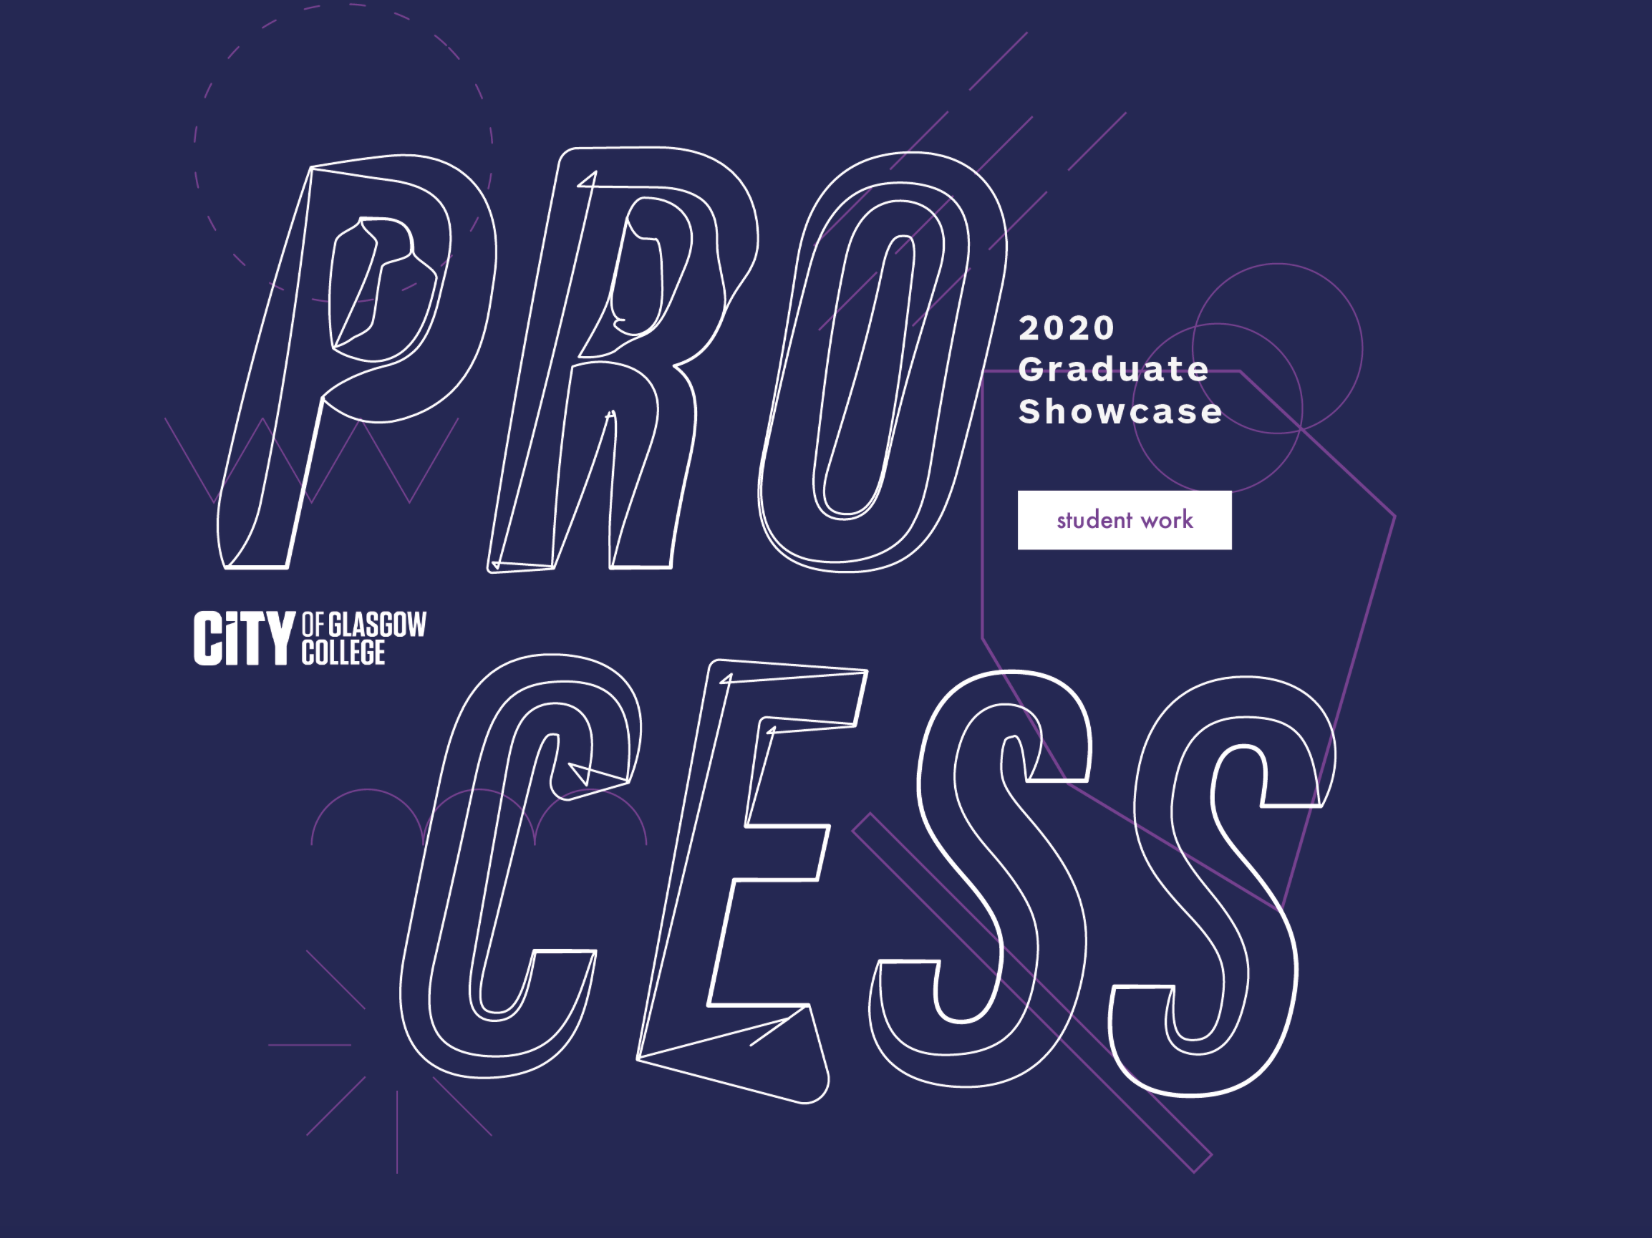 The promotional graphic for Process - 2020 Graduate Showcase at the City of Glasgow College